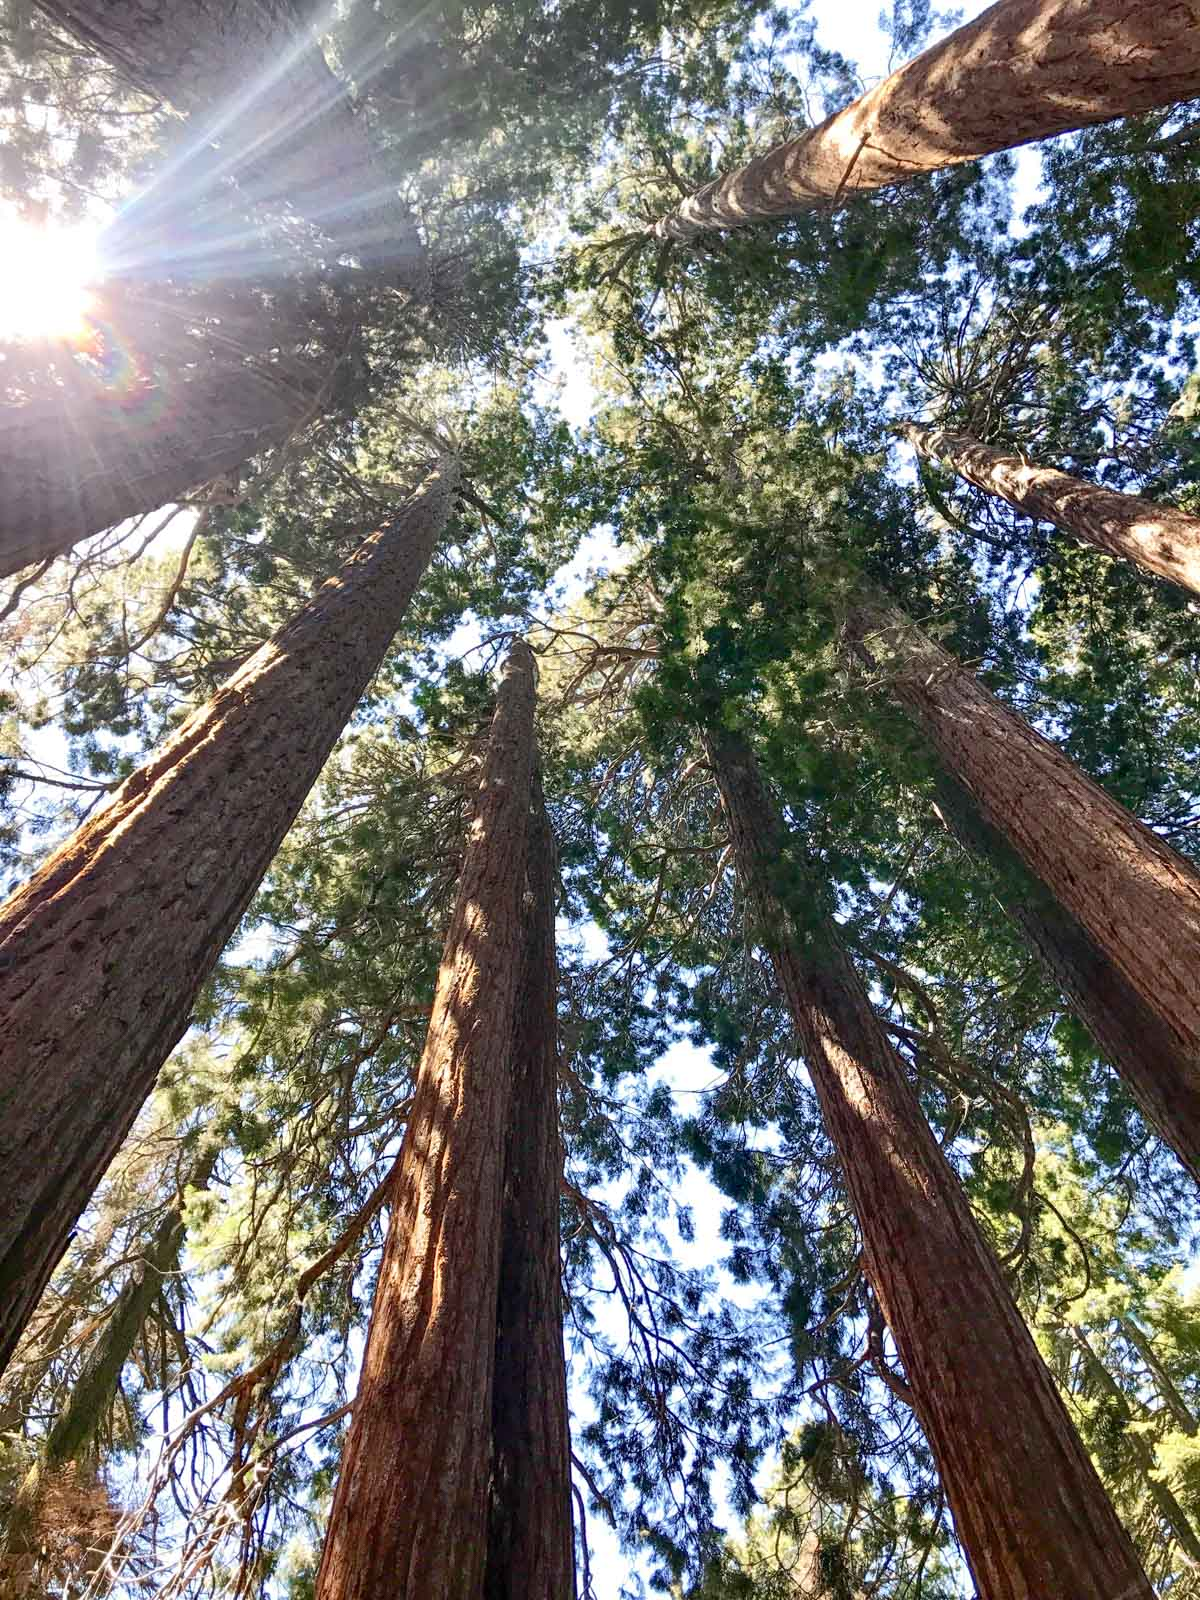 All our favorite places to visit and sites to see in Sequoia National Park.